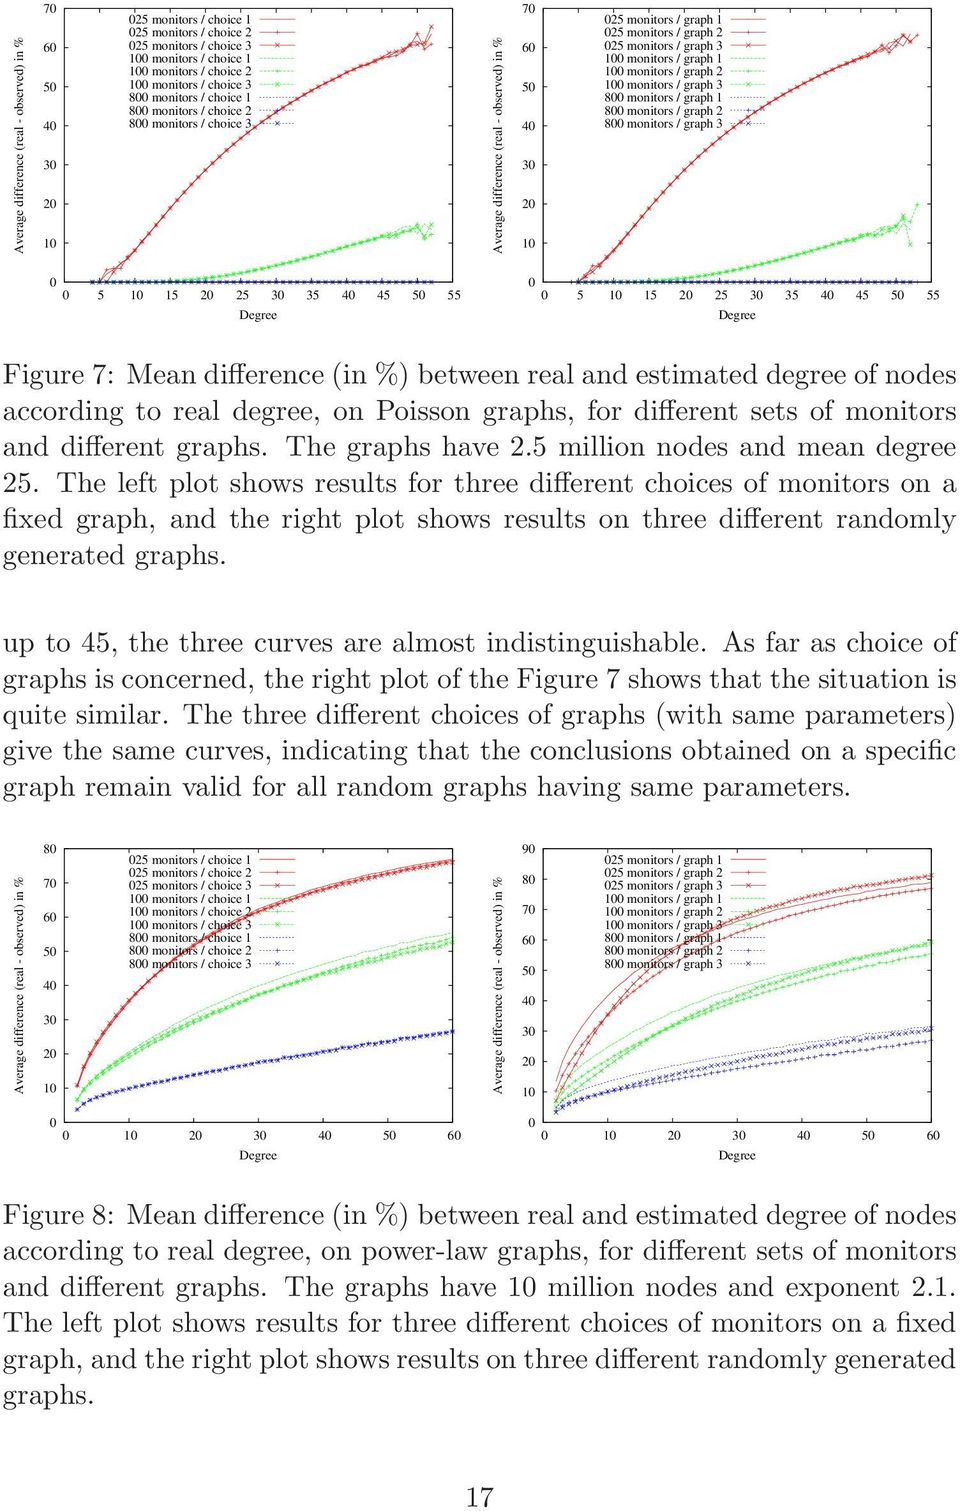 monitors / graph 3 8 monitors / graph 8 monitors / graph 2 8 monitors / graph 3 5 5 2 25 3 35 4 45 5 55 5 5 2 25 3 35 4 45 5 55 Figure 7: Mean difference (in %) between real and estimated degree of